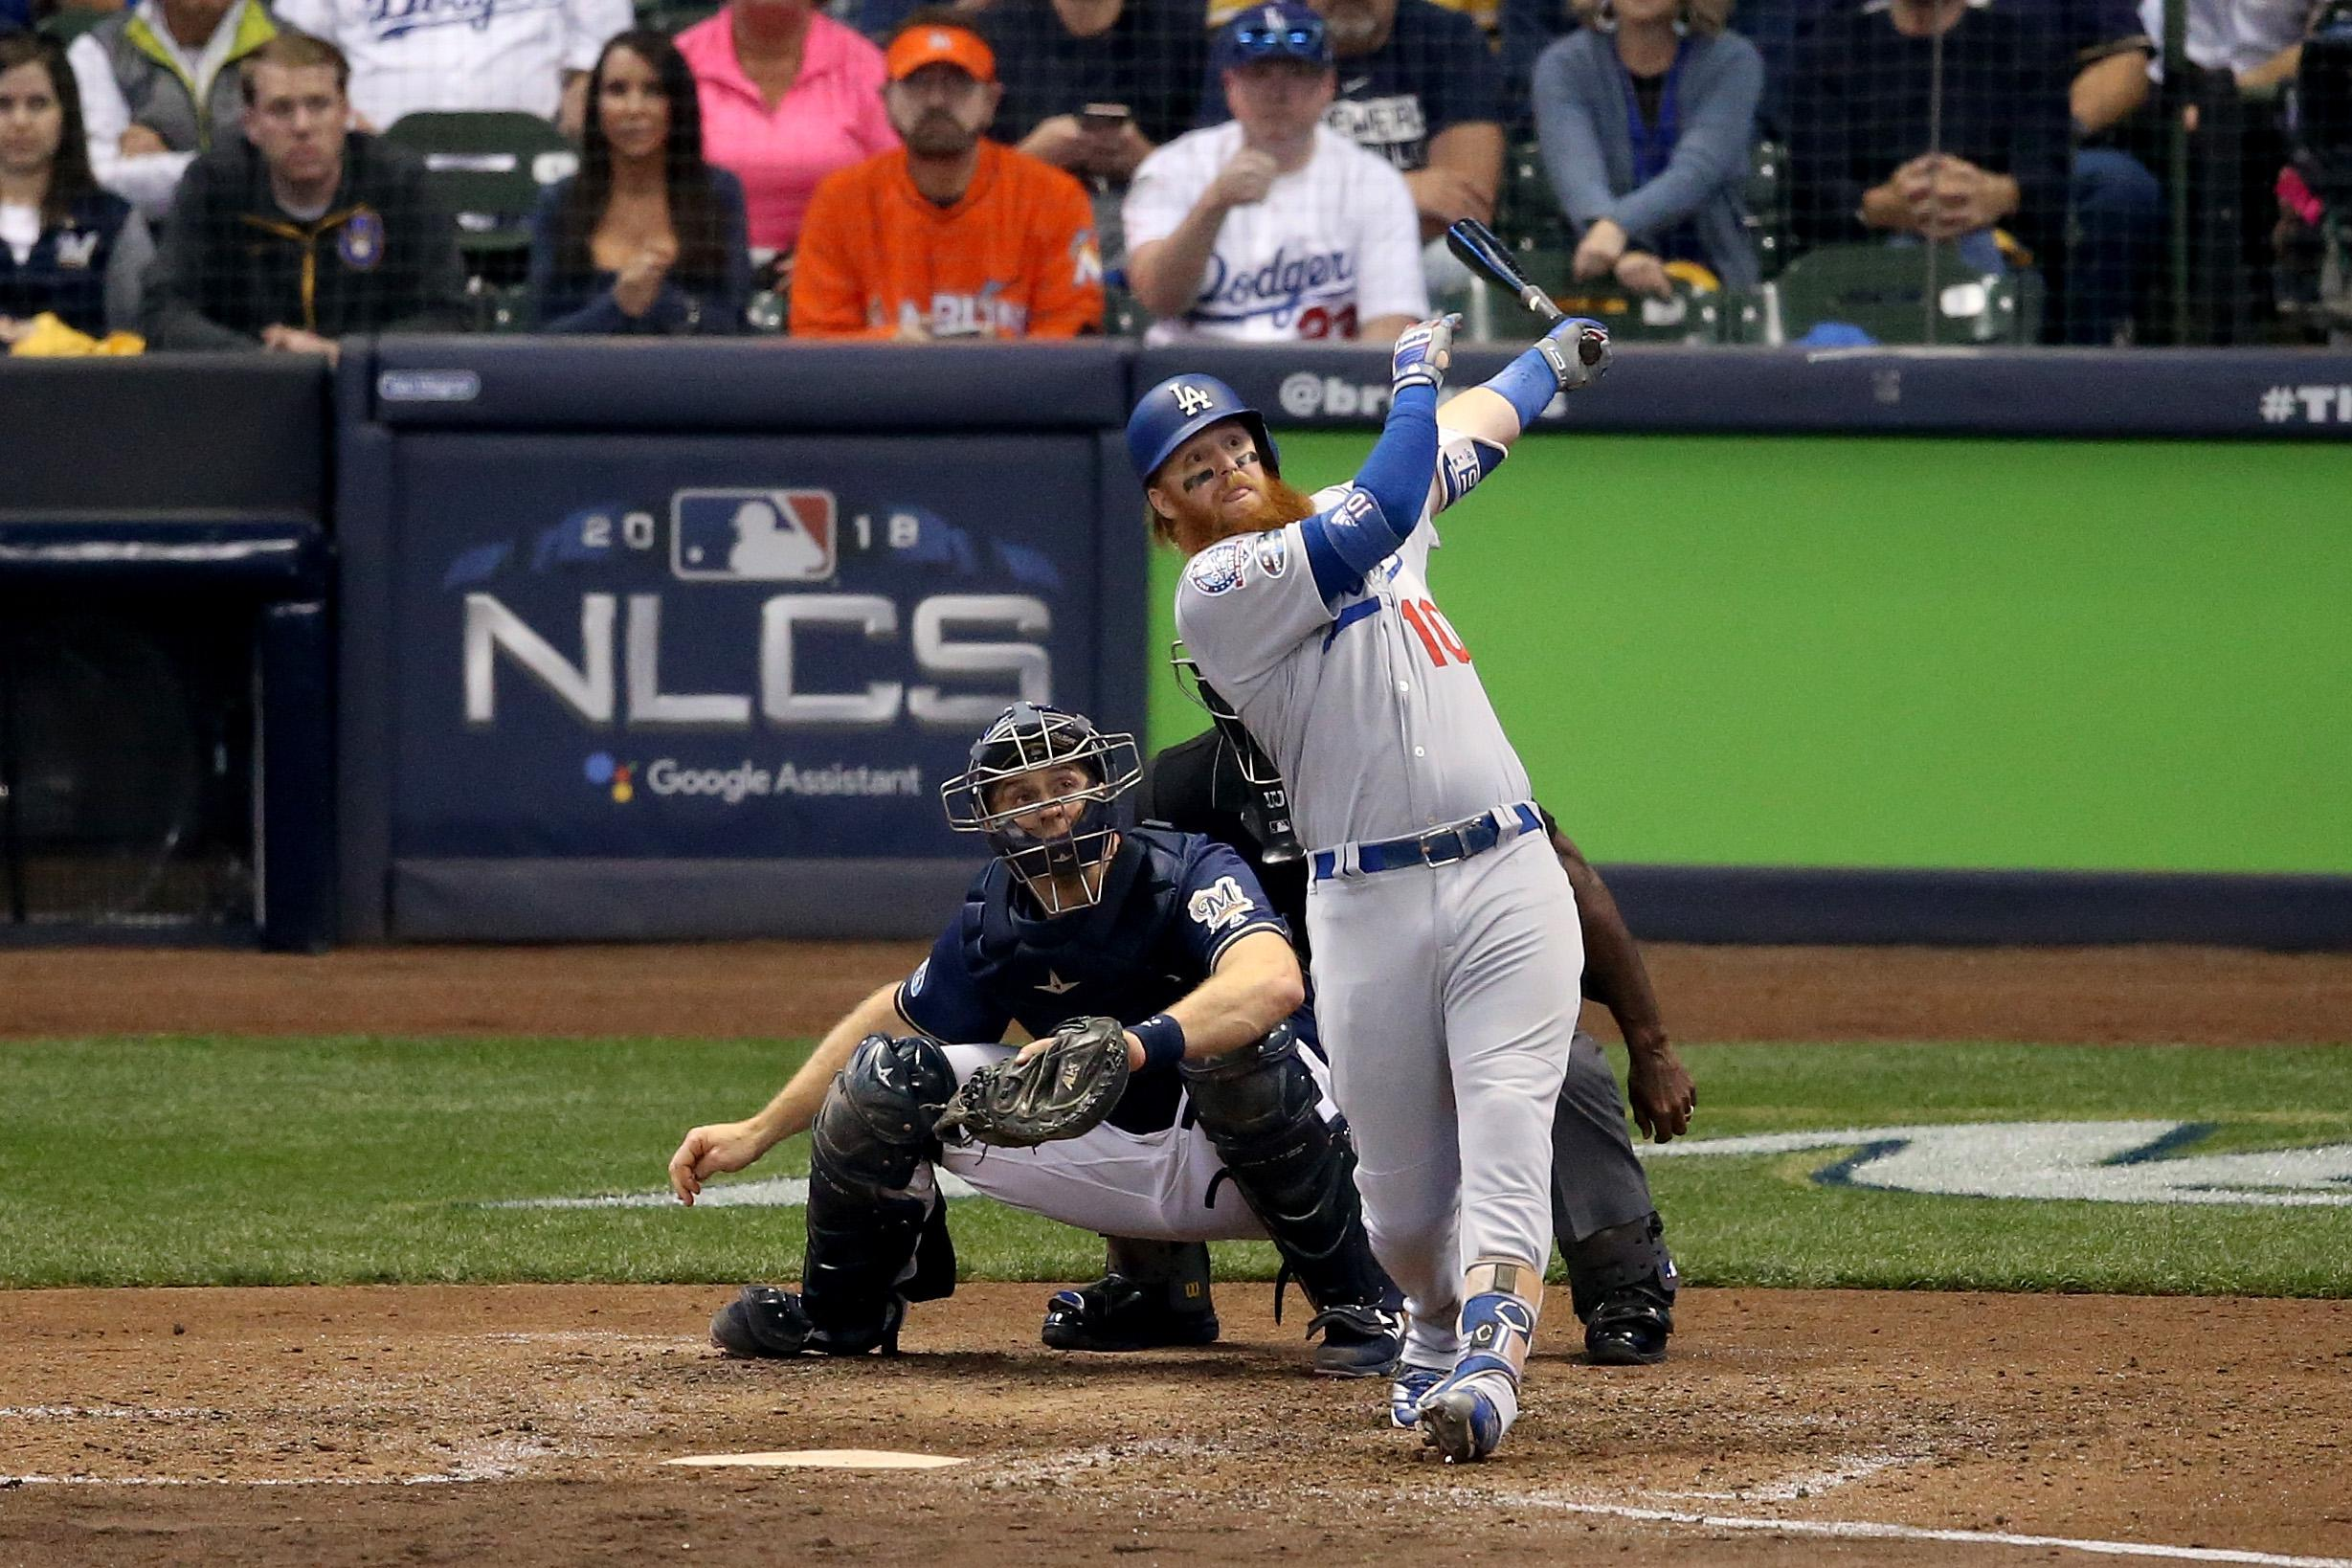 MILWAUKEE, WI - OCTOBER 13:  Justin Turner #10 of the Los Angeles Dodgers hits a two run home run against Jeremy Jeffress #32 of the Milwaukee Brewers during the eighth inning in Game Two of the National League Championship Series at Miller Park on October 13, 2018 in Milwaukee, Wisconsin.  (Photo by Dylan Buell/Getty Images)